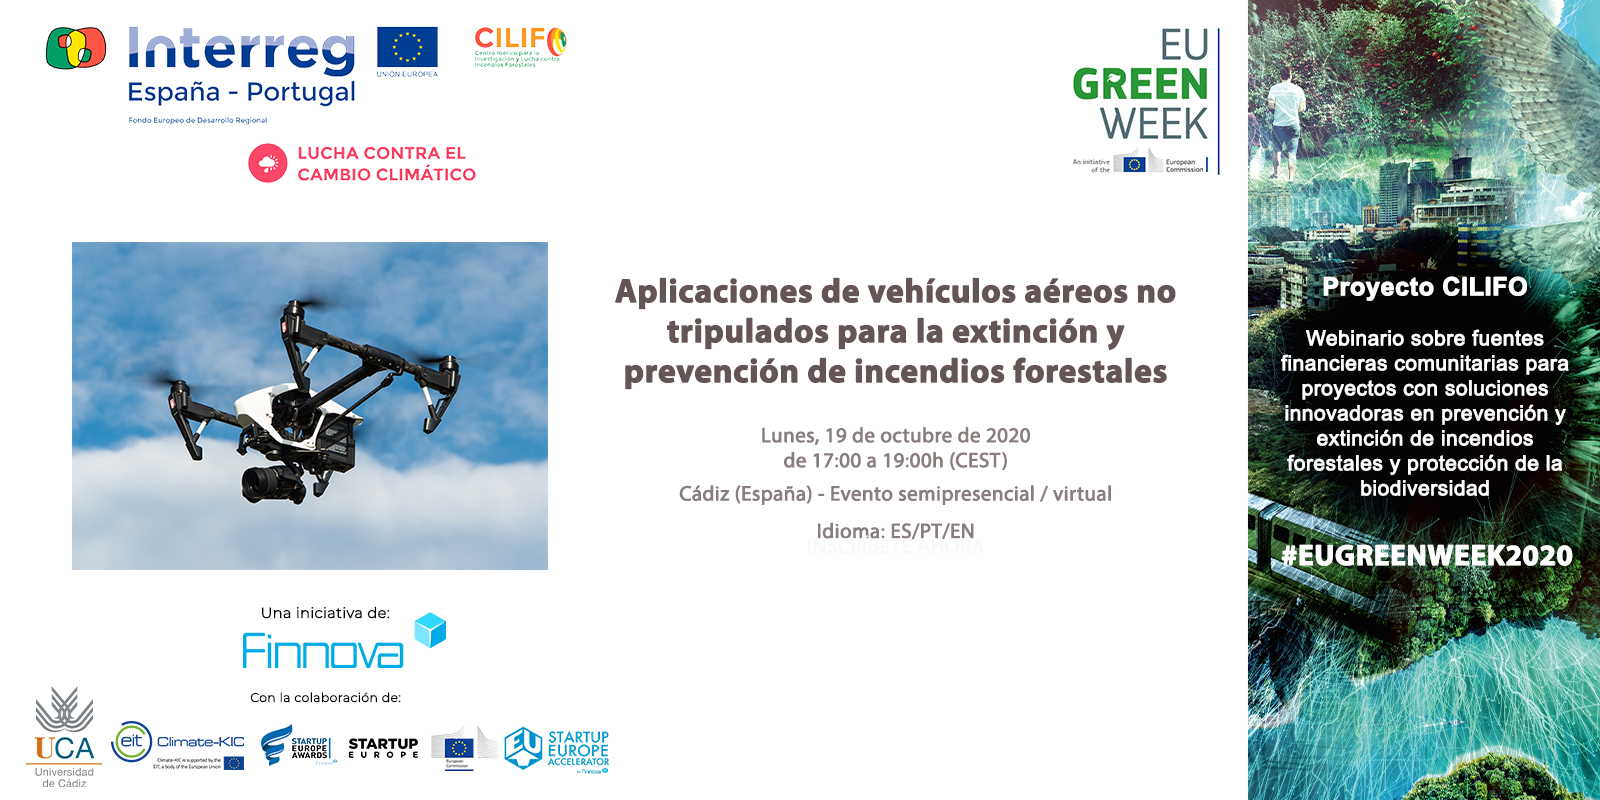 More than 100 people attend the third CILIFO webinar as part of #EUGreenWeek2020